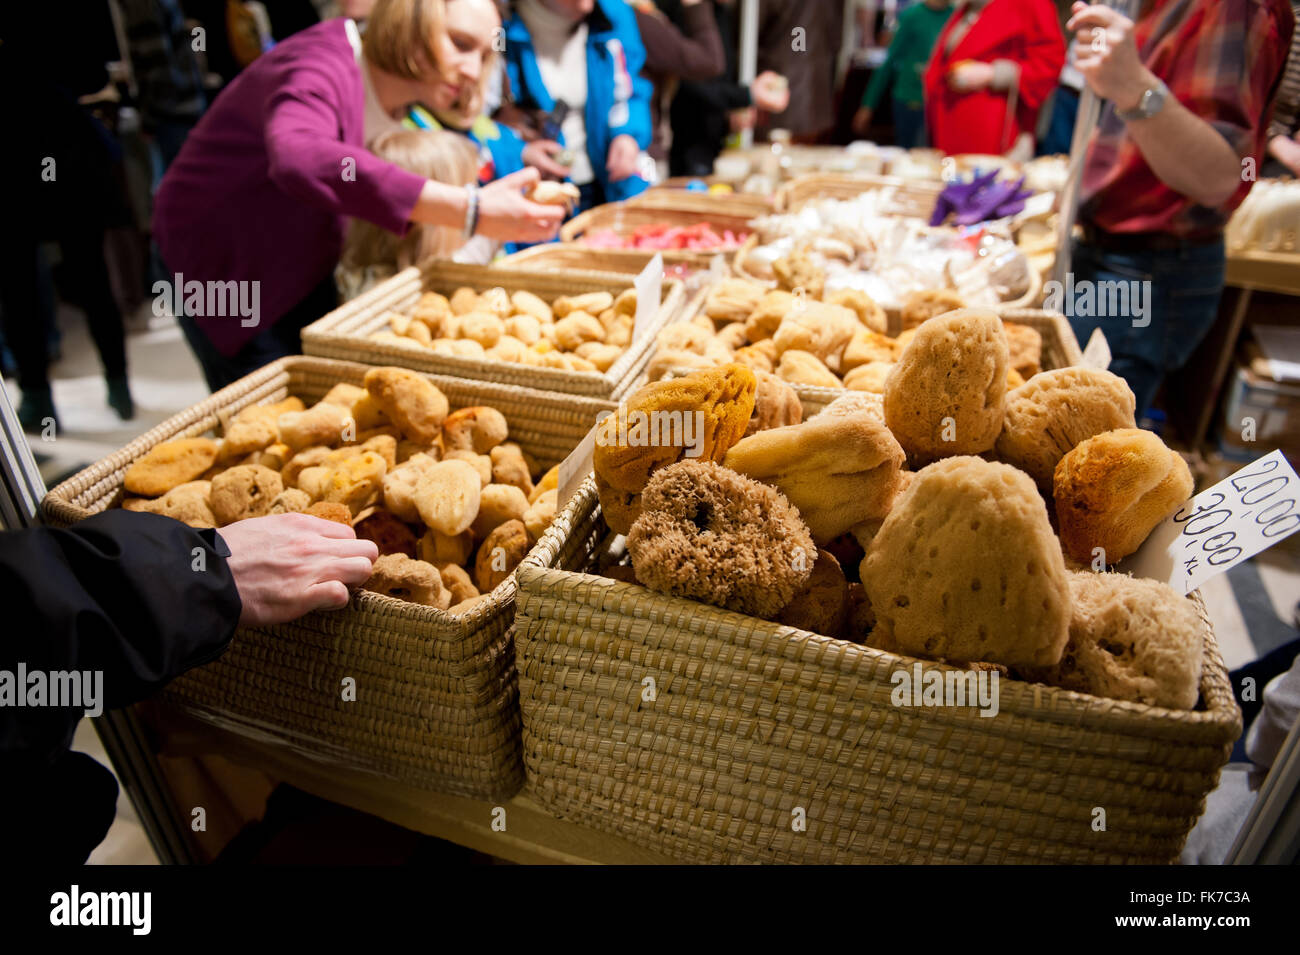 Coral And Sale Stock Photos & Coral And Sale Stock Images - Alamy